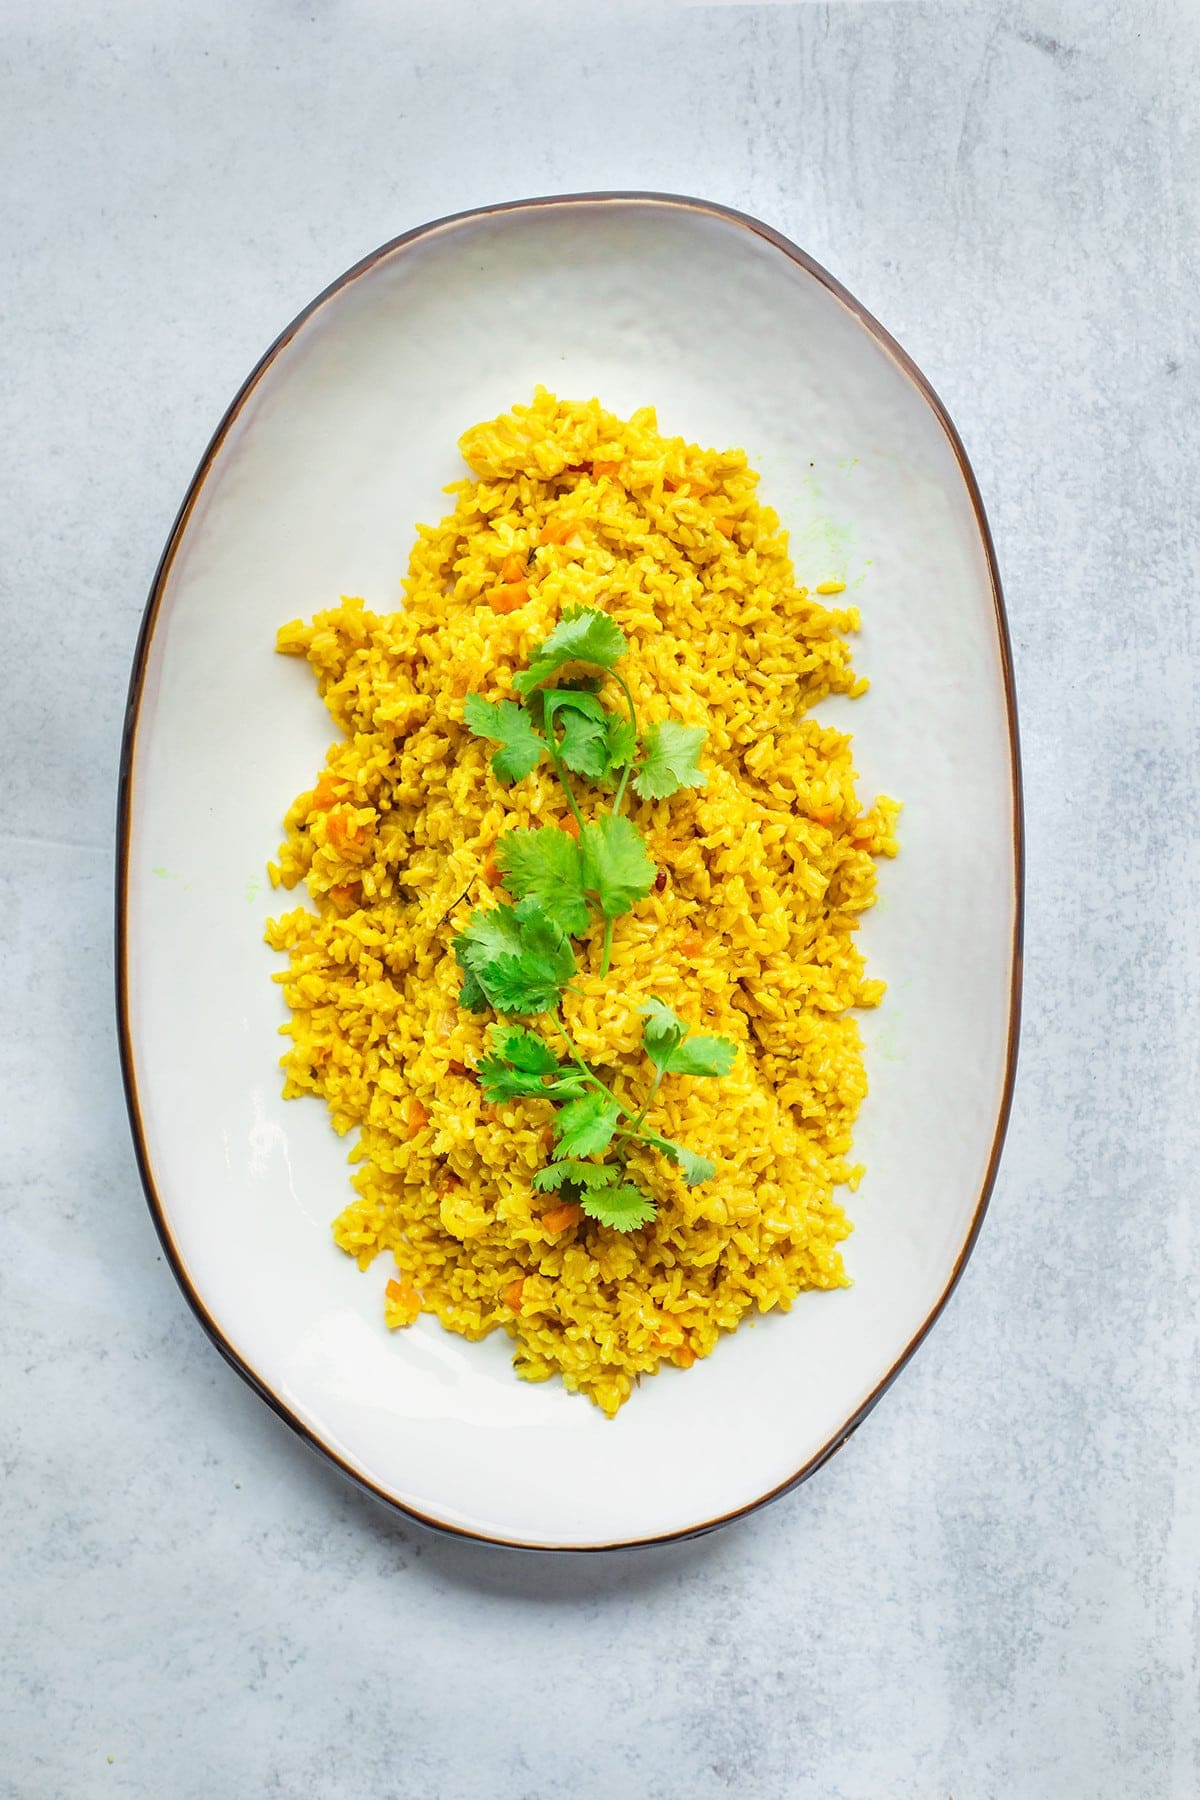 Overlay of yellow turmeric coconut rice garnished with cilantro on a white plate